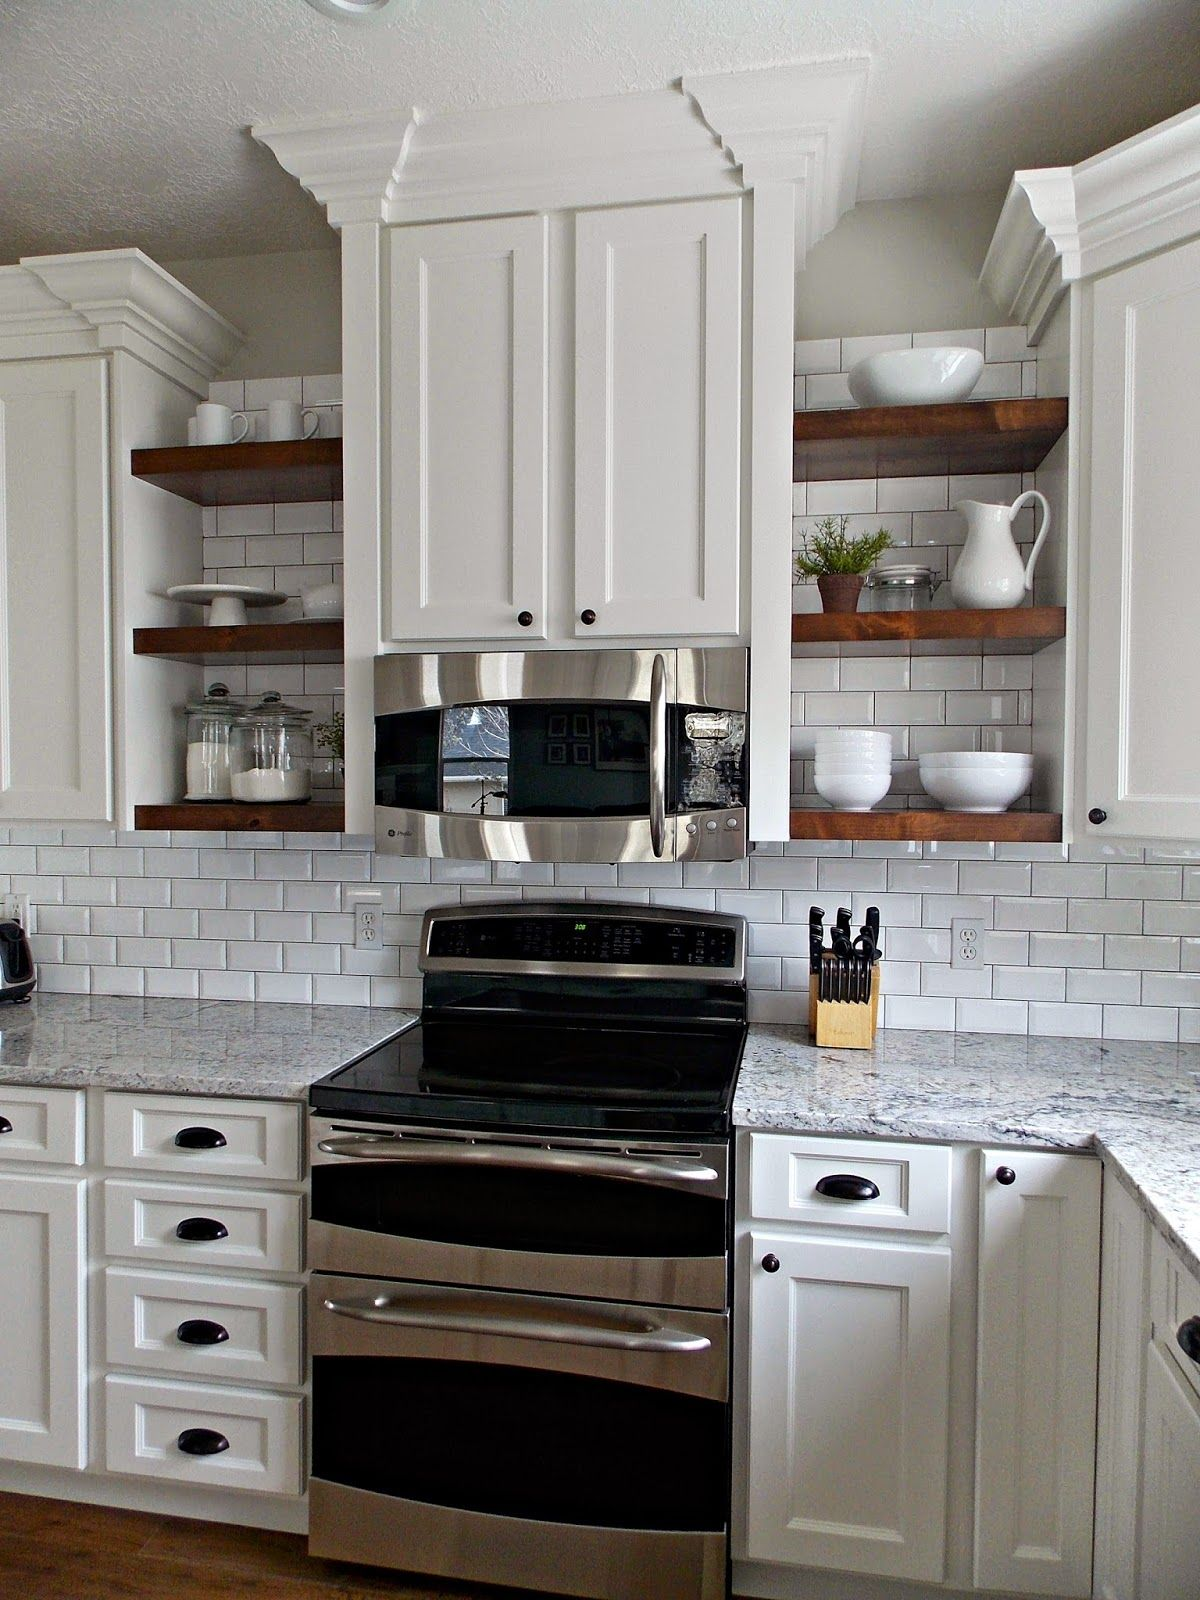 TDA decorating and design Kitchen Before, During, & After